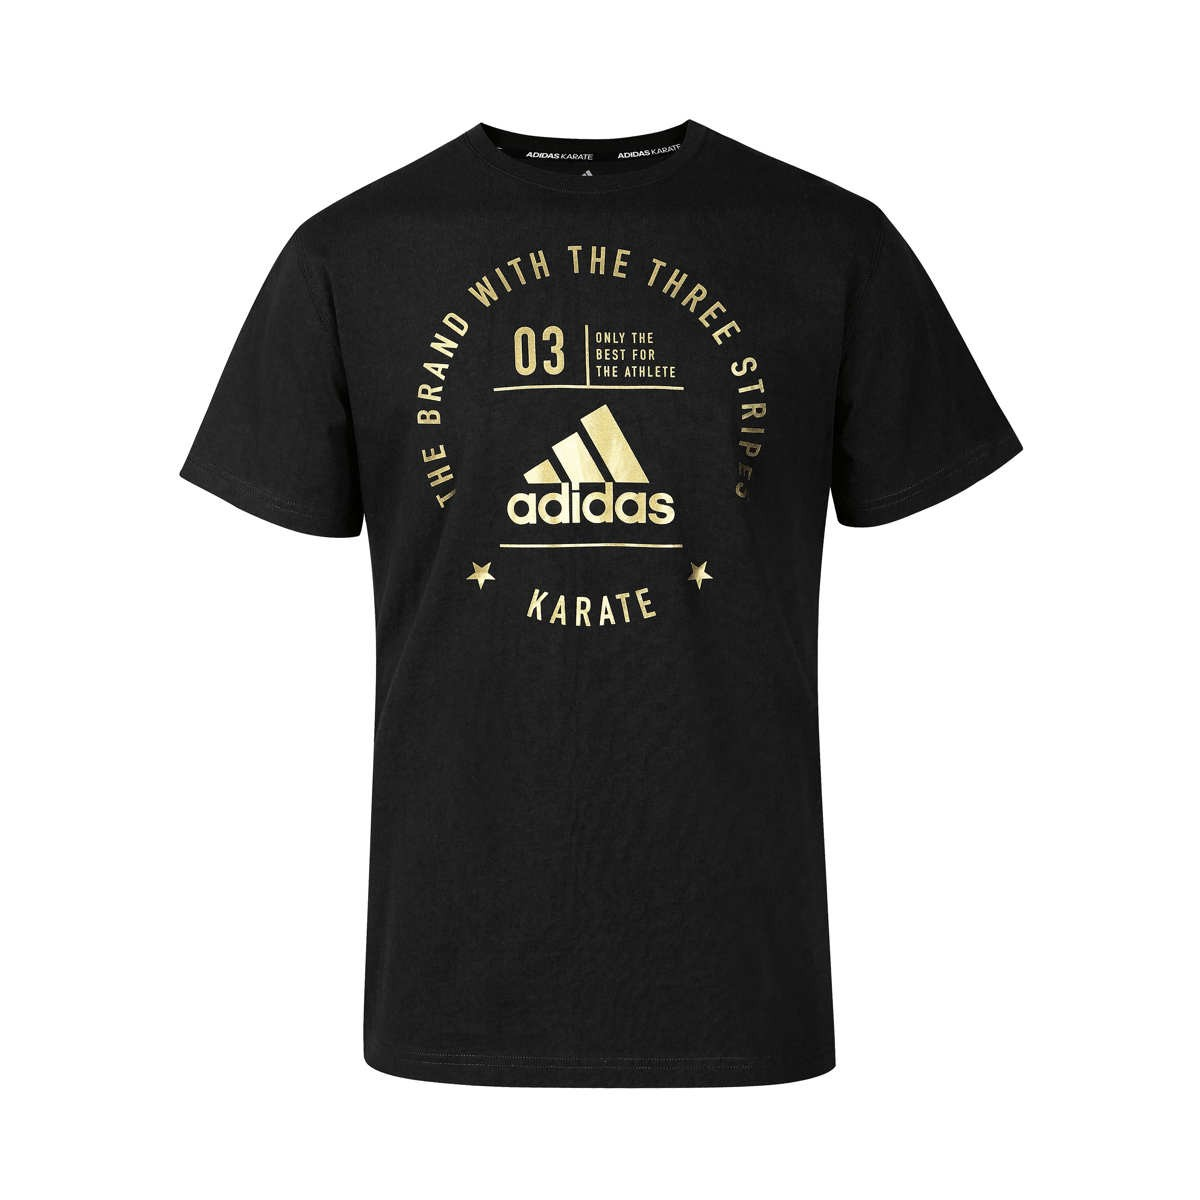 adidas Community T-Shirt Karate schwarz/gold